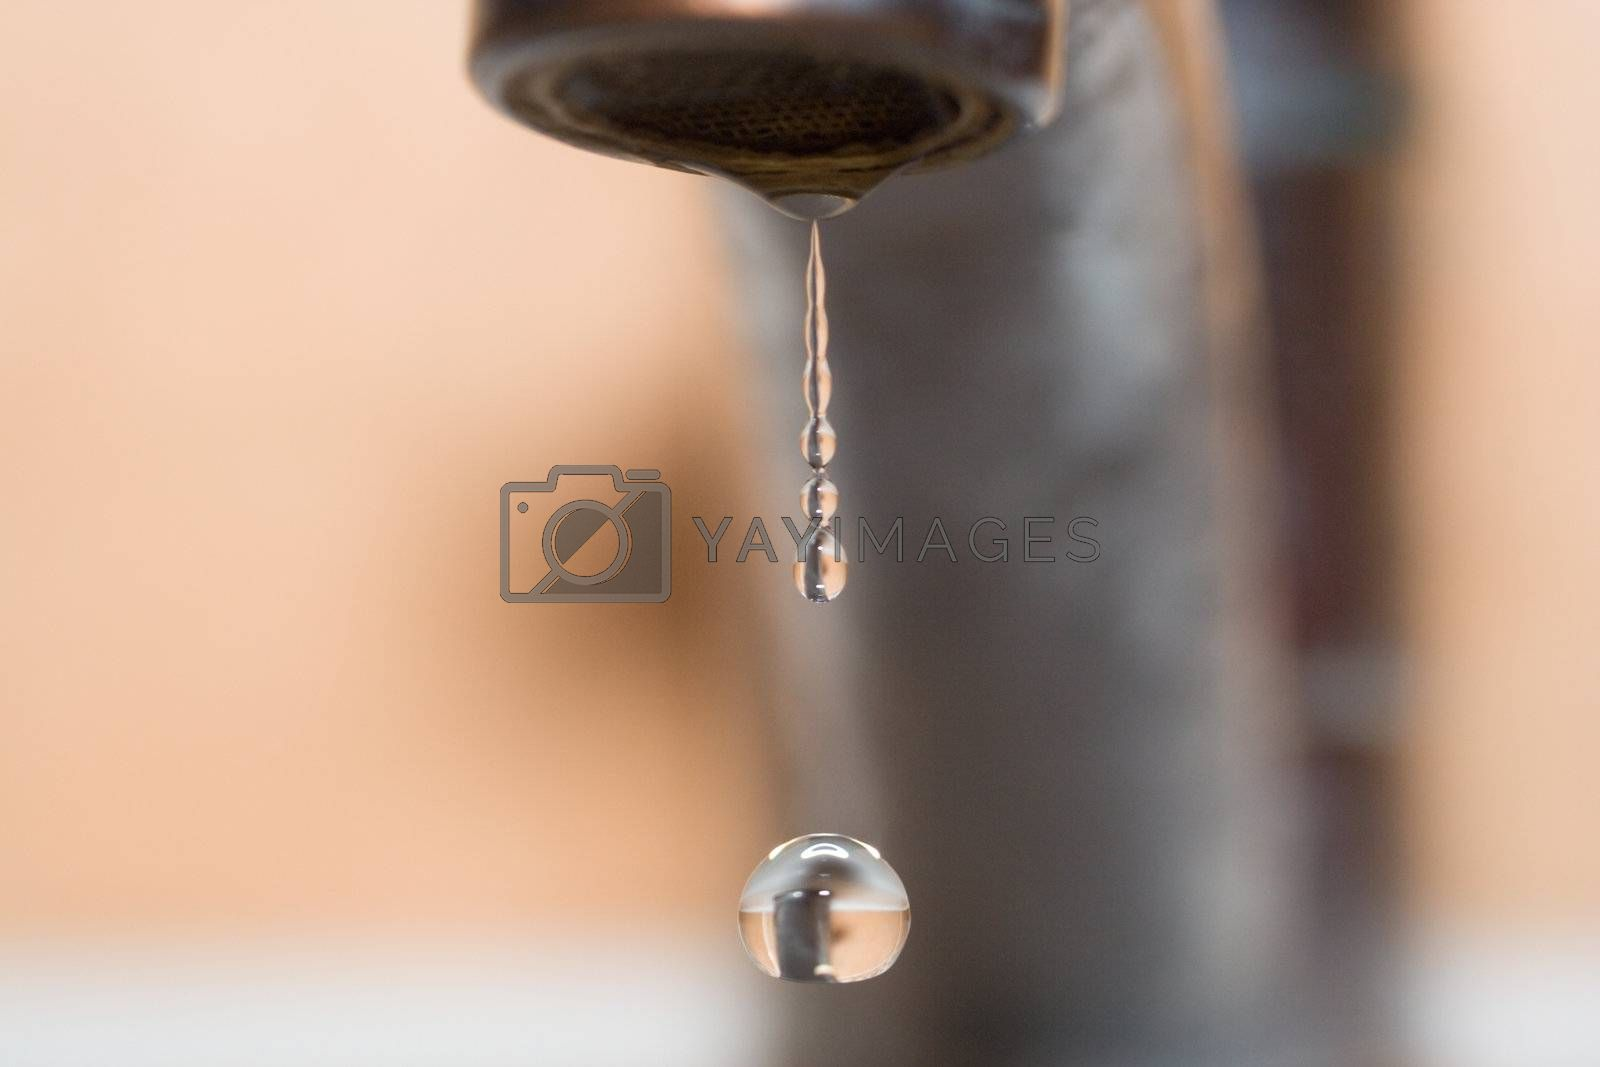 drop of water from faucet in bathroom with reflection